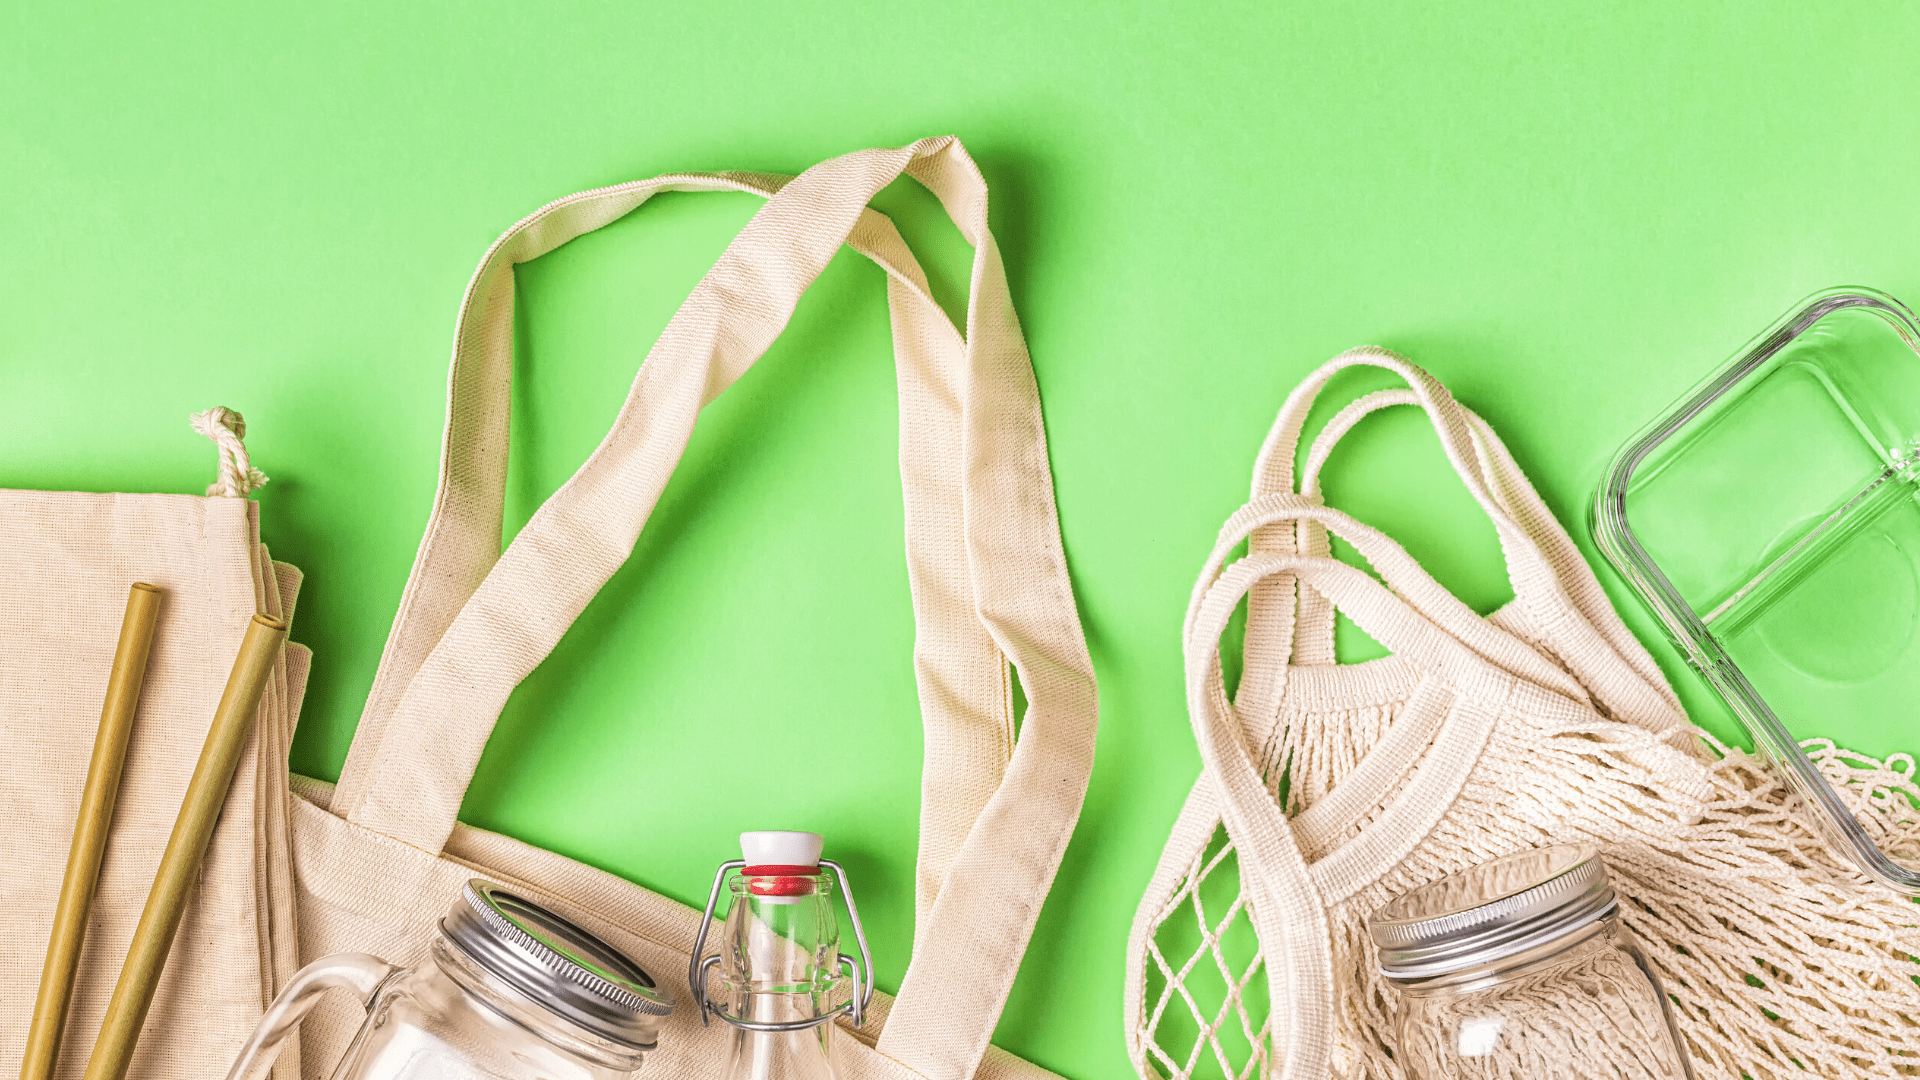 Reusable items, like bags, straws and bottles, that can replace single-use plastics